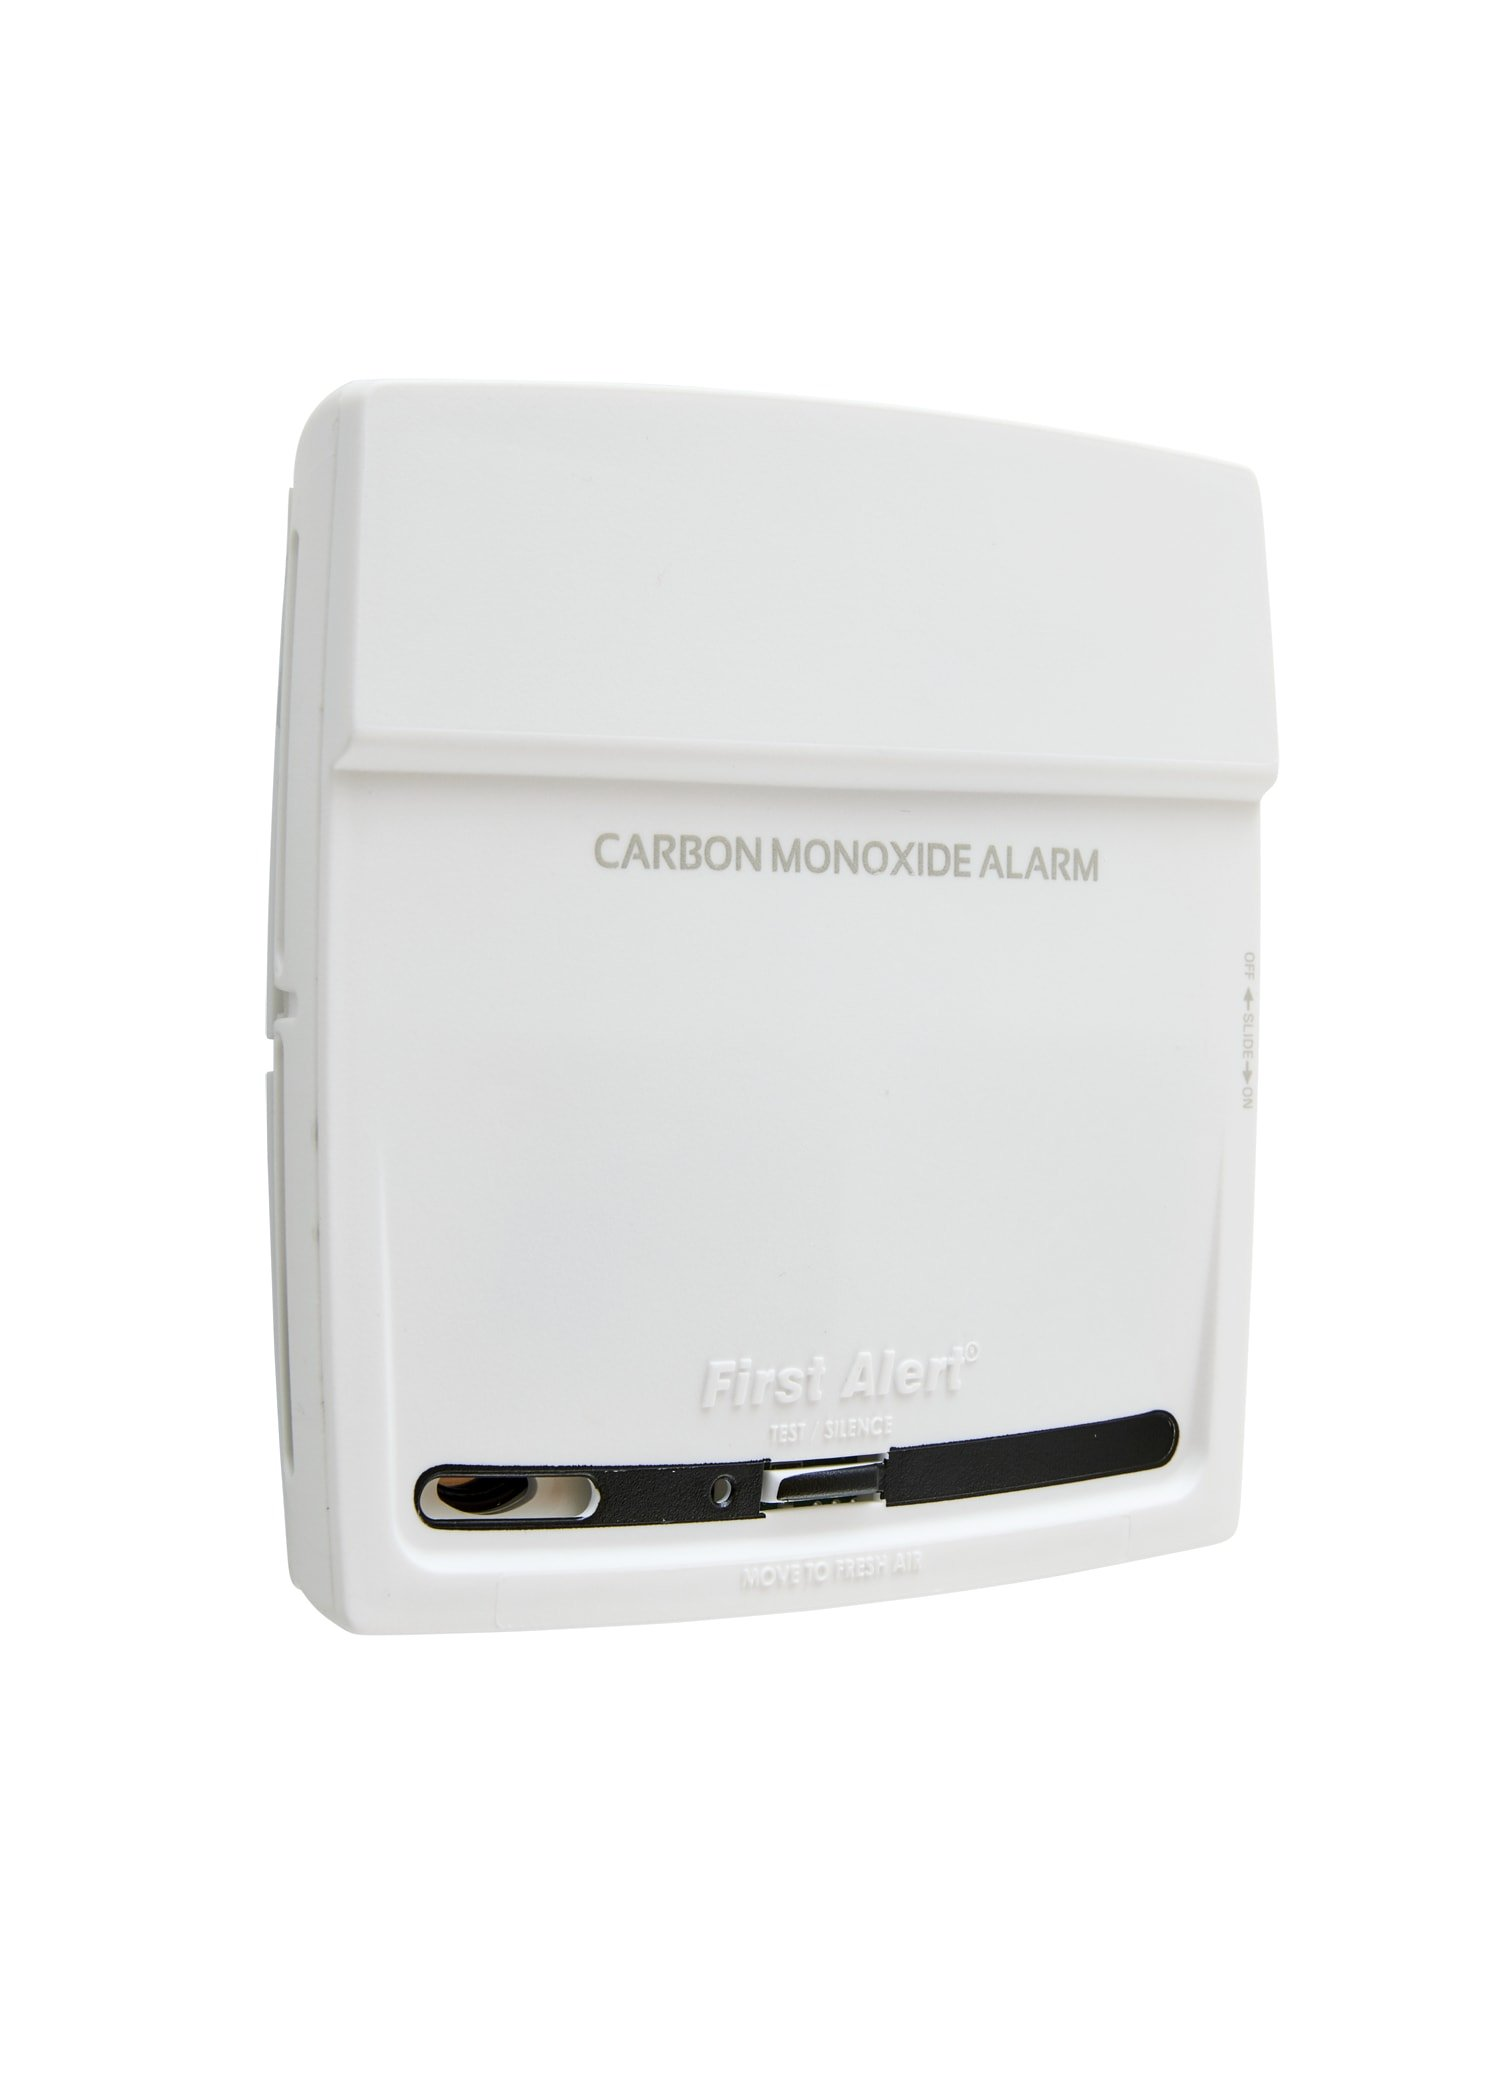 First Alert 10-Year Carbon Monoxide Alarm, White,  CO910 by First Alert